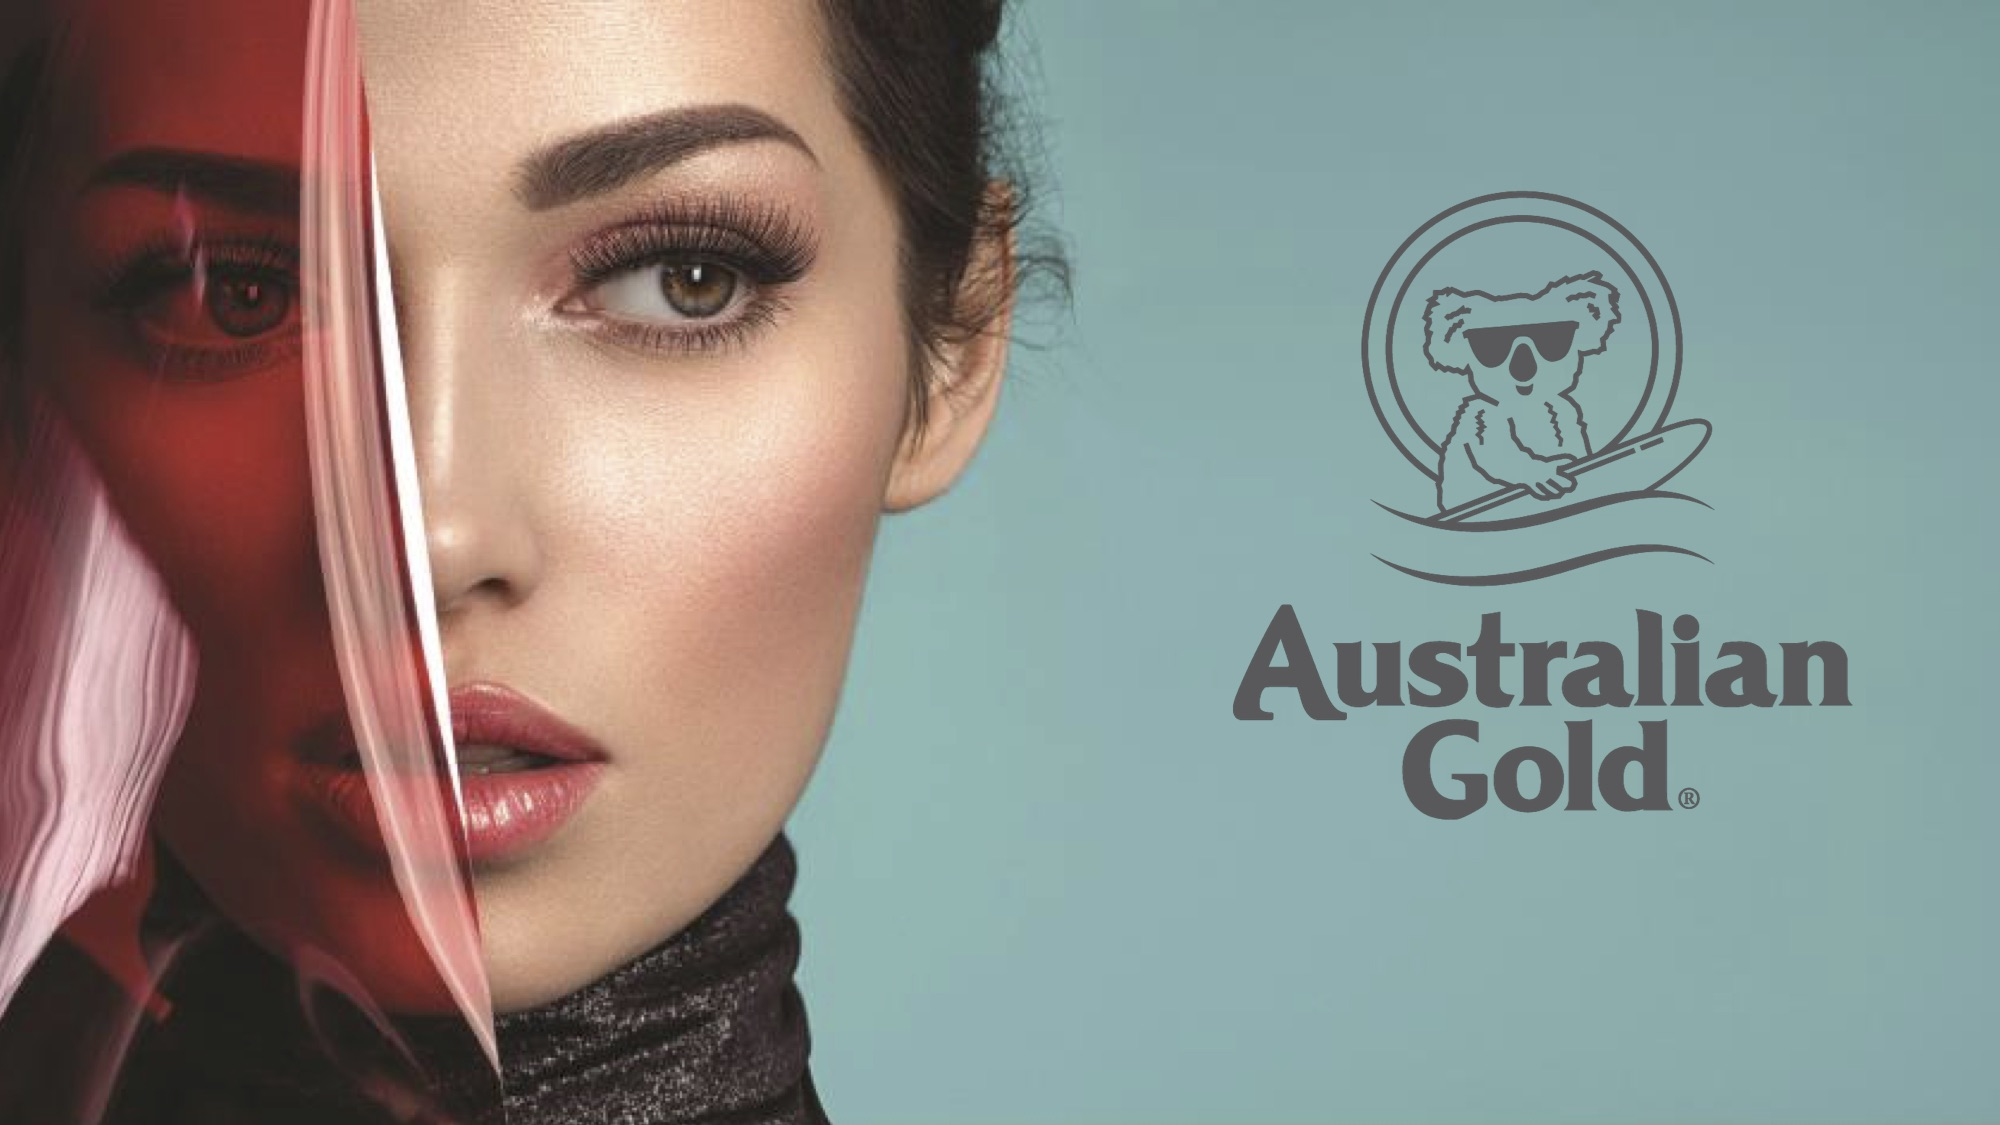 Raysistant make up australian gold cyrano ltd new for 2020 collection